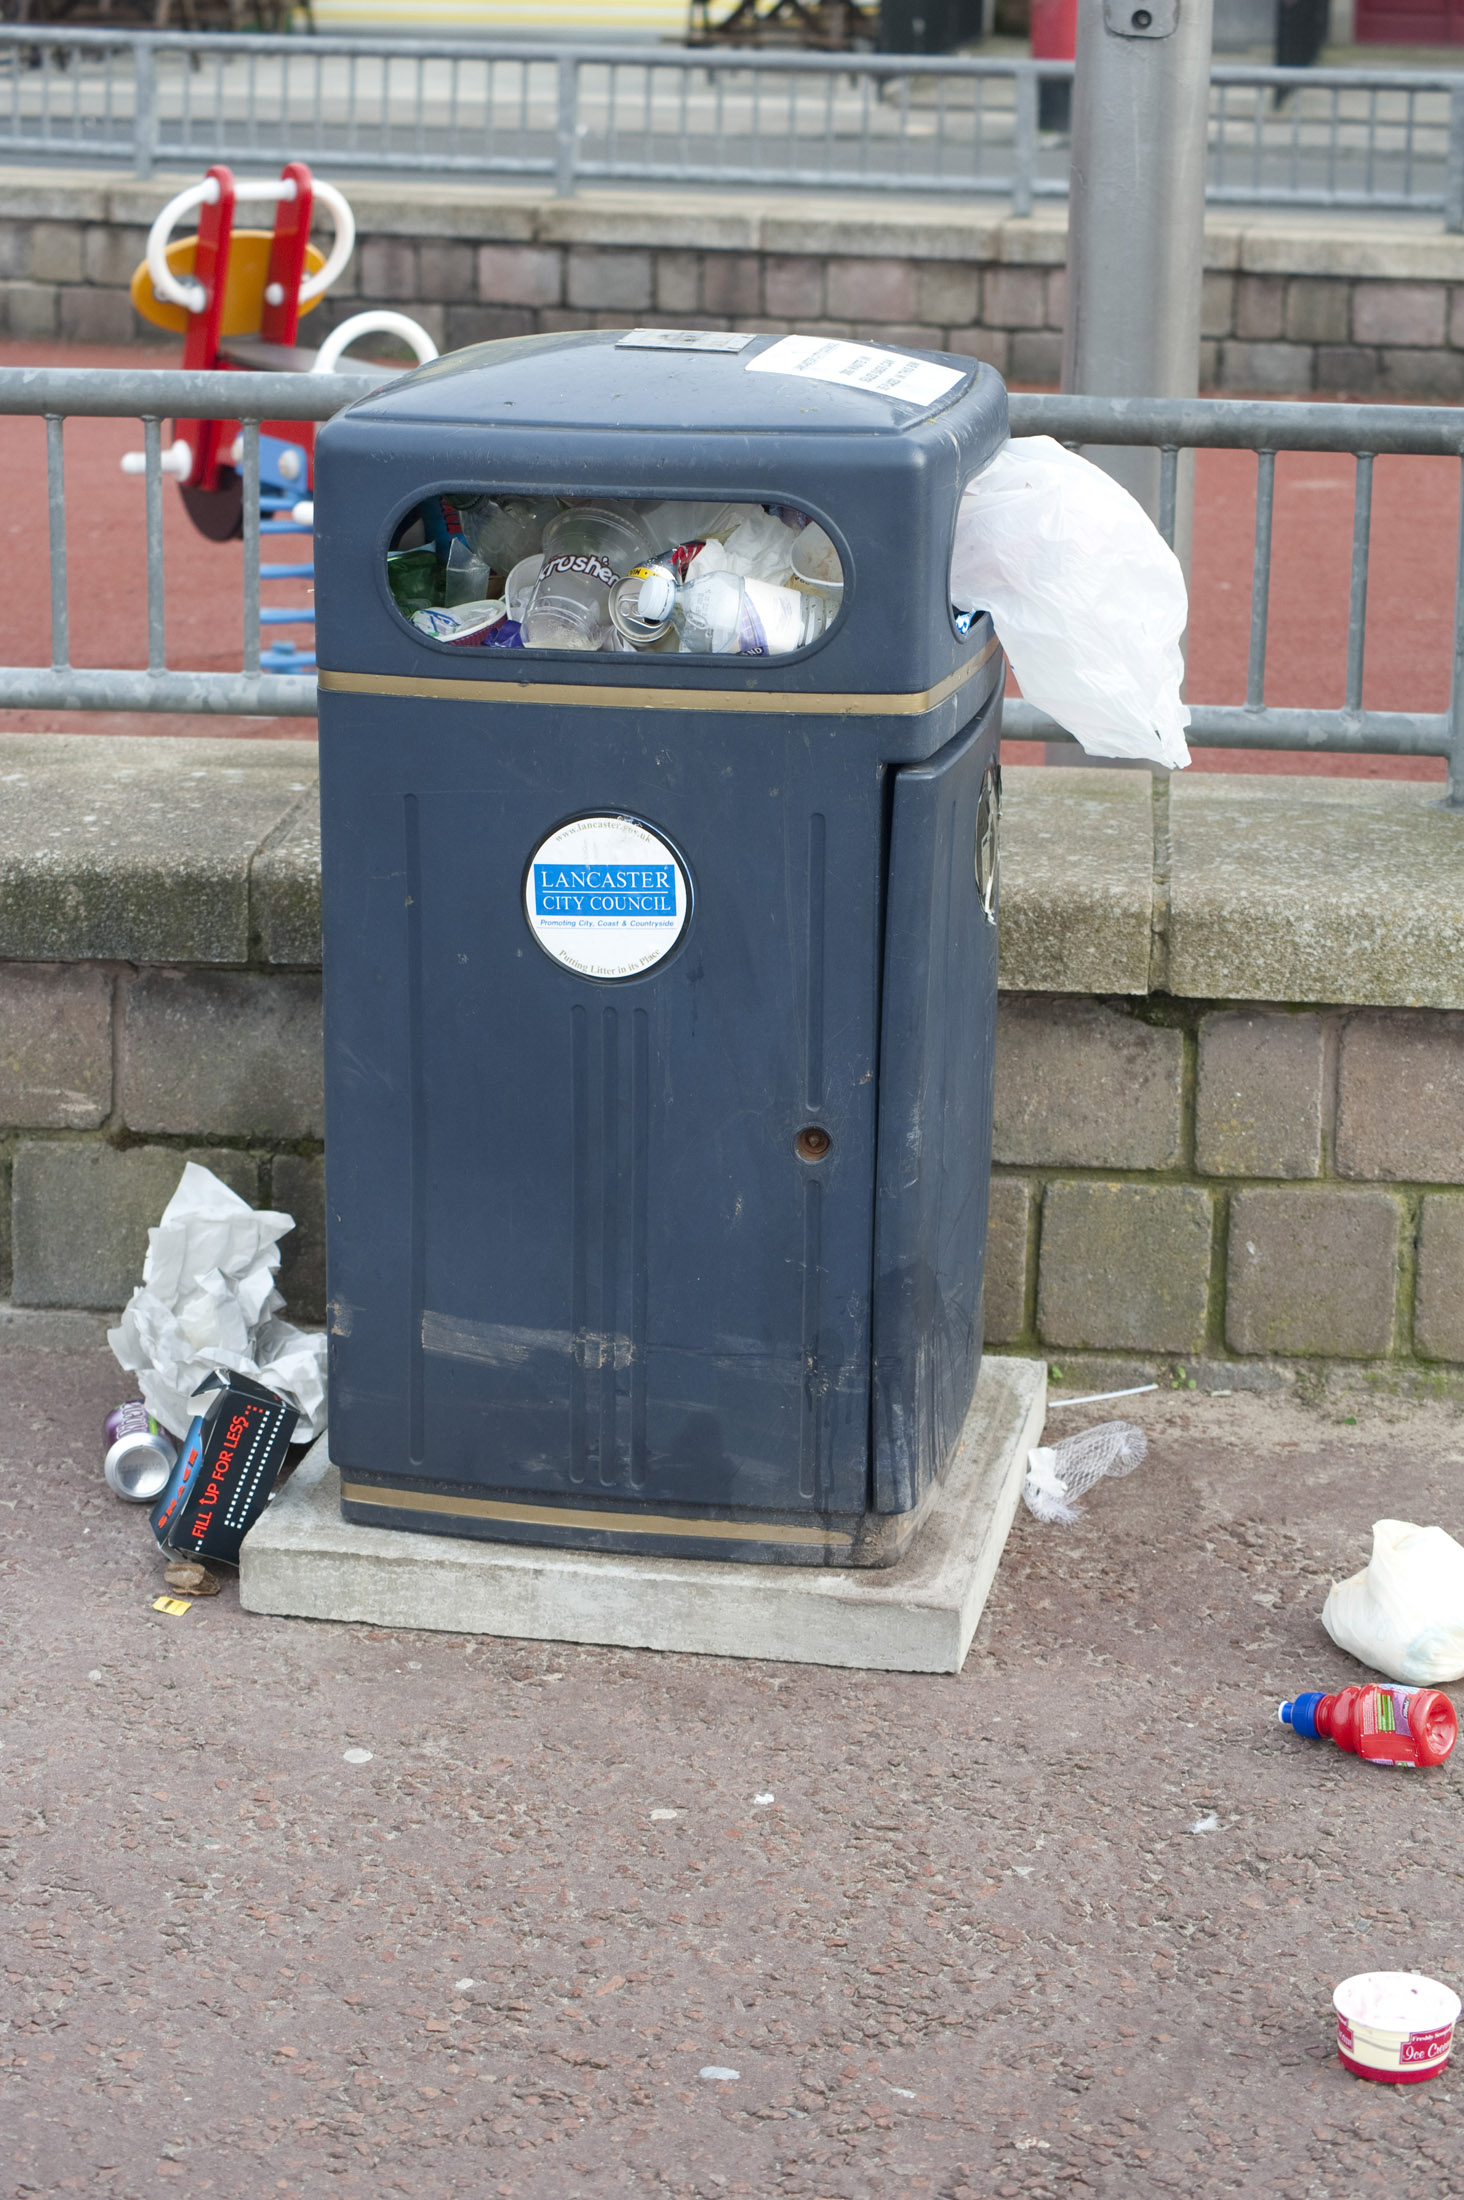 another overflowing litter bin on morecambe seafront, if the town is uncharacteristically clean for some reason these have been provided to tempt visitors to simply not bother keeping it that way thus restoring equilibrium